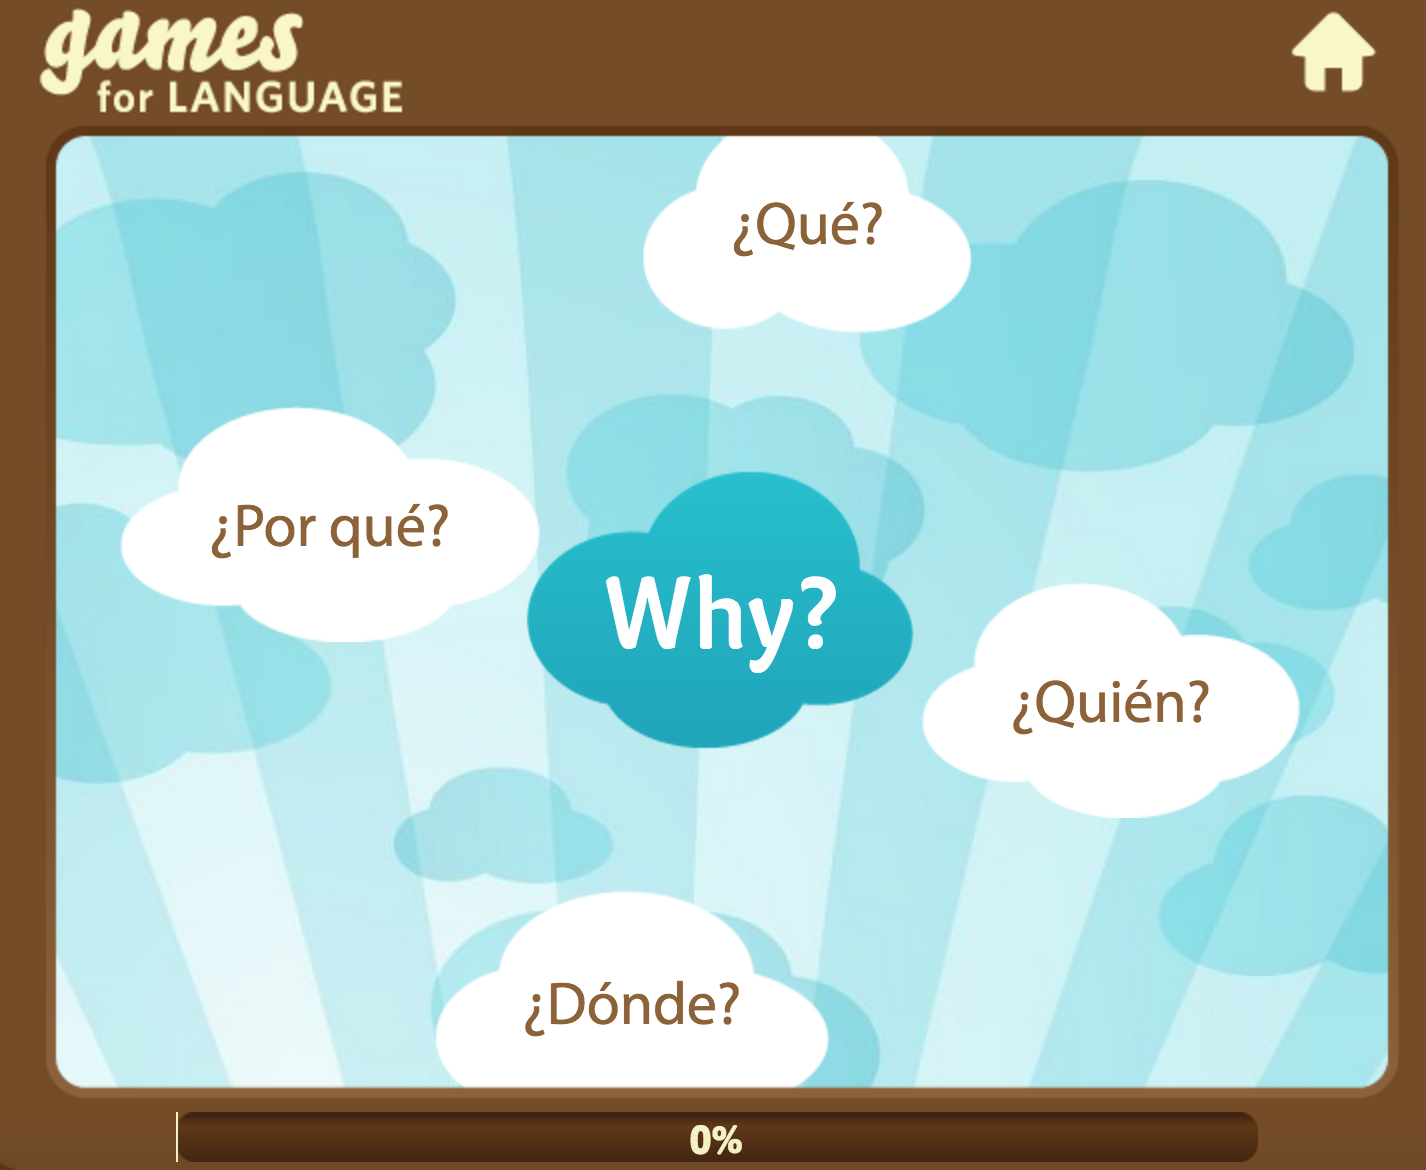 Spanish Question words Game - Gamesforlanguage.com